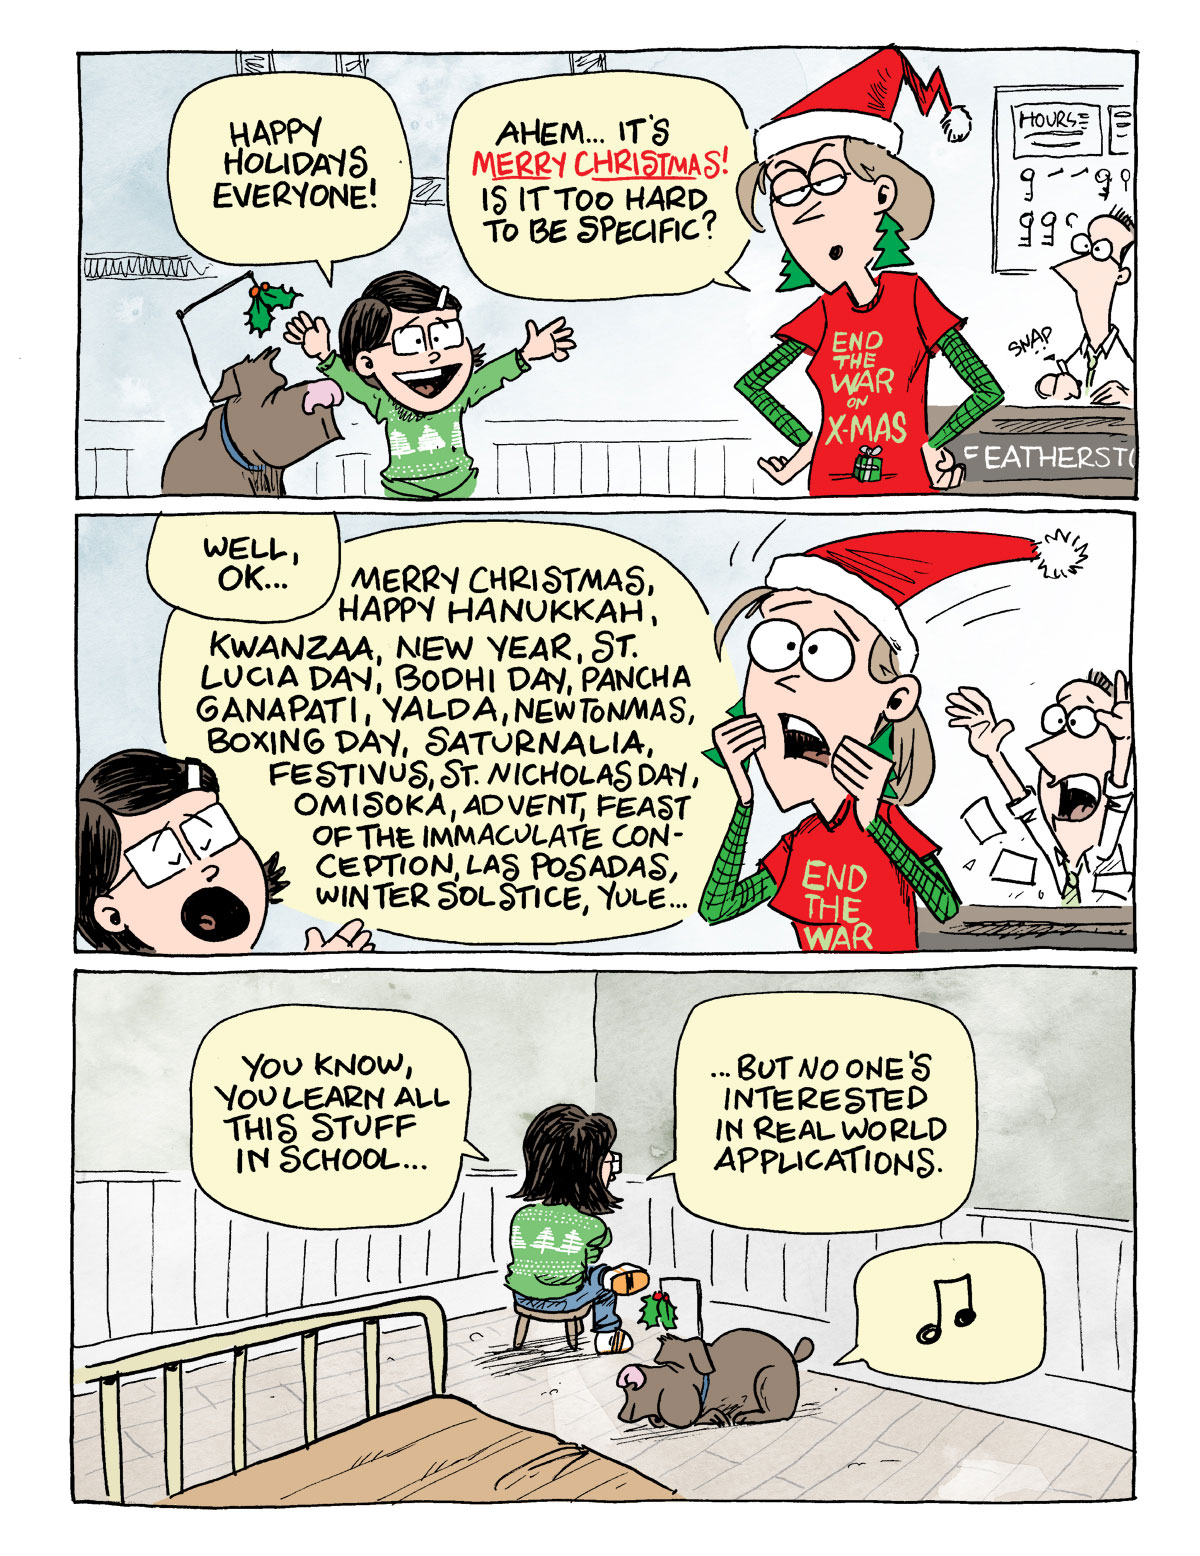 20141204-War-on-Xmas-FINAL-for-web